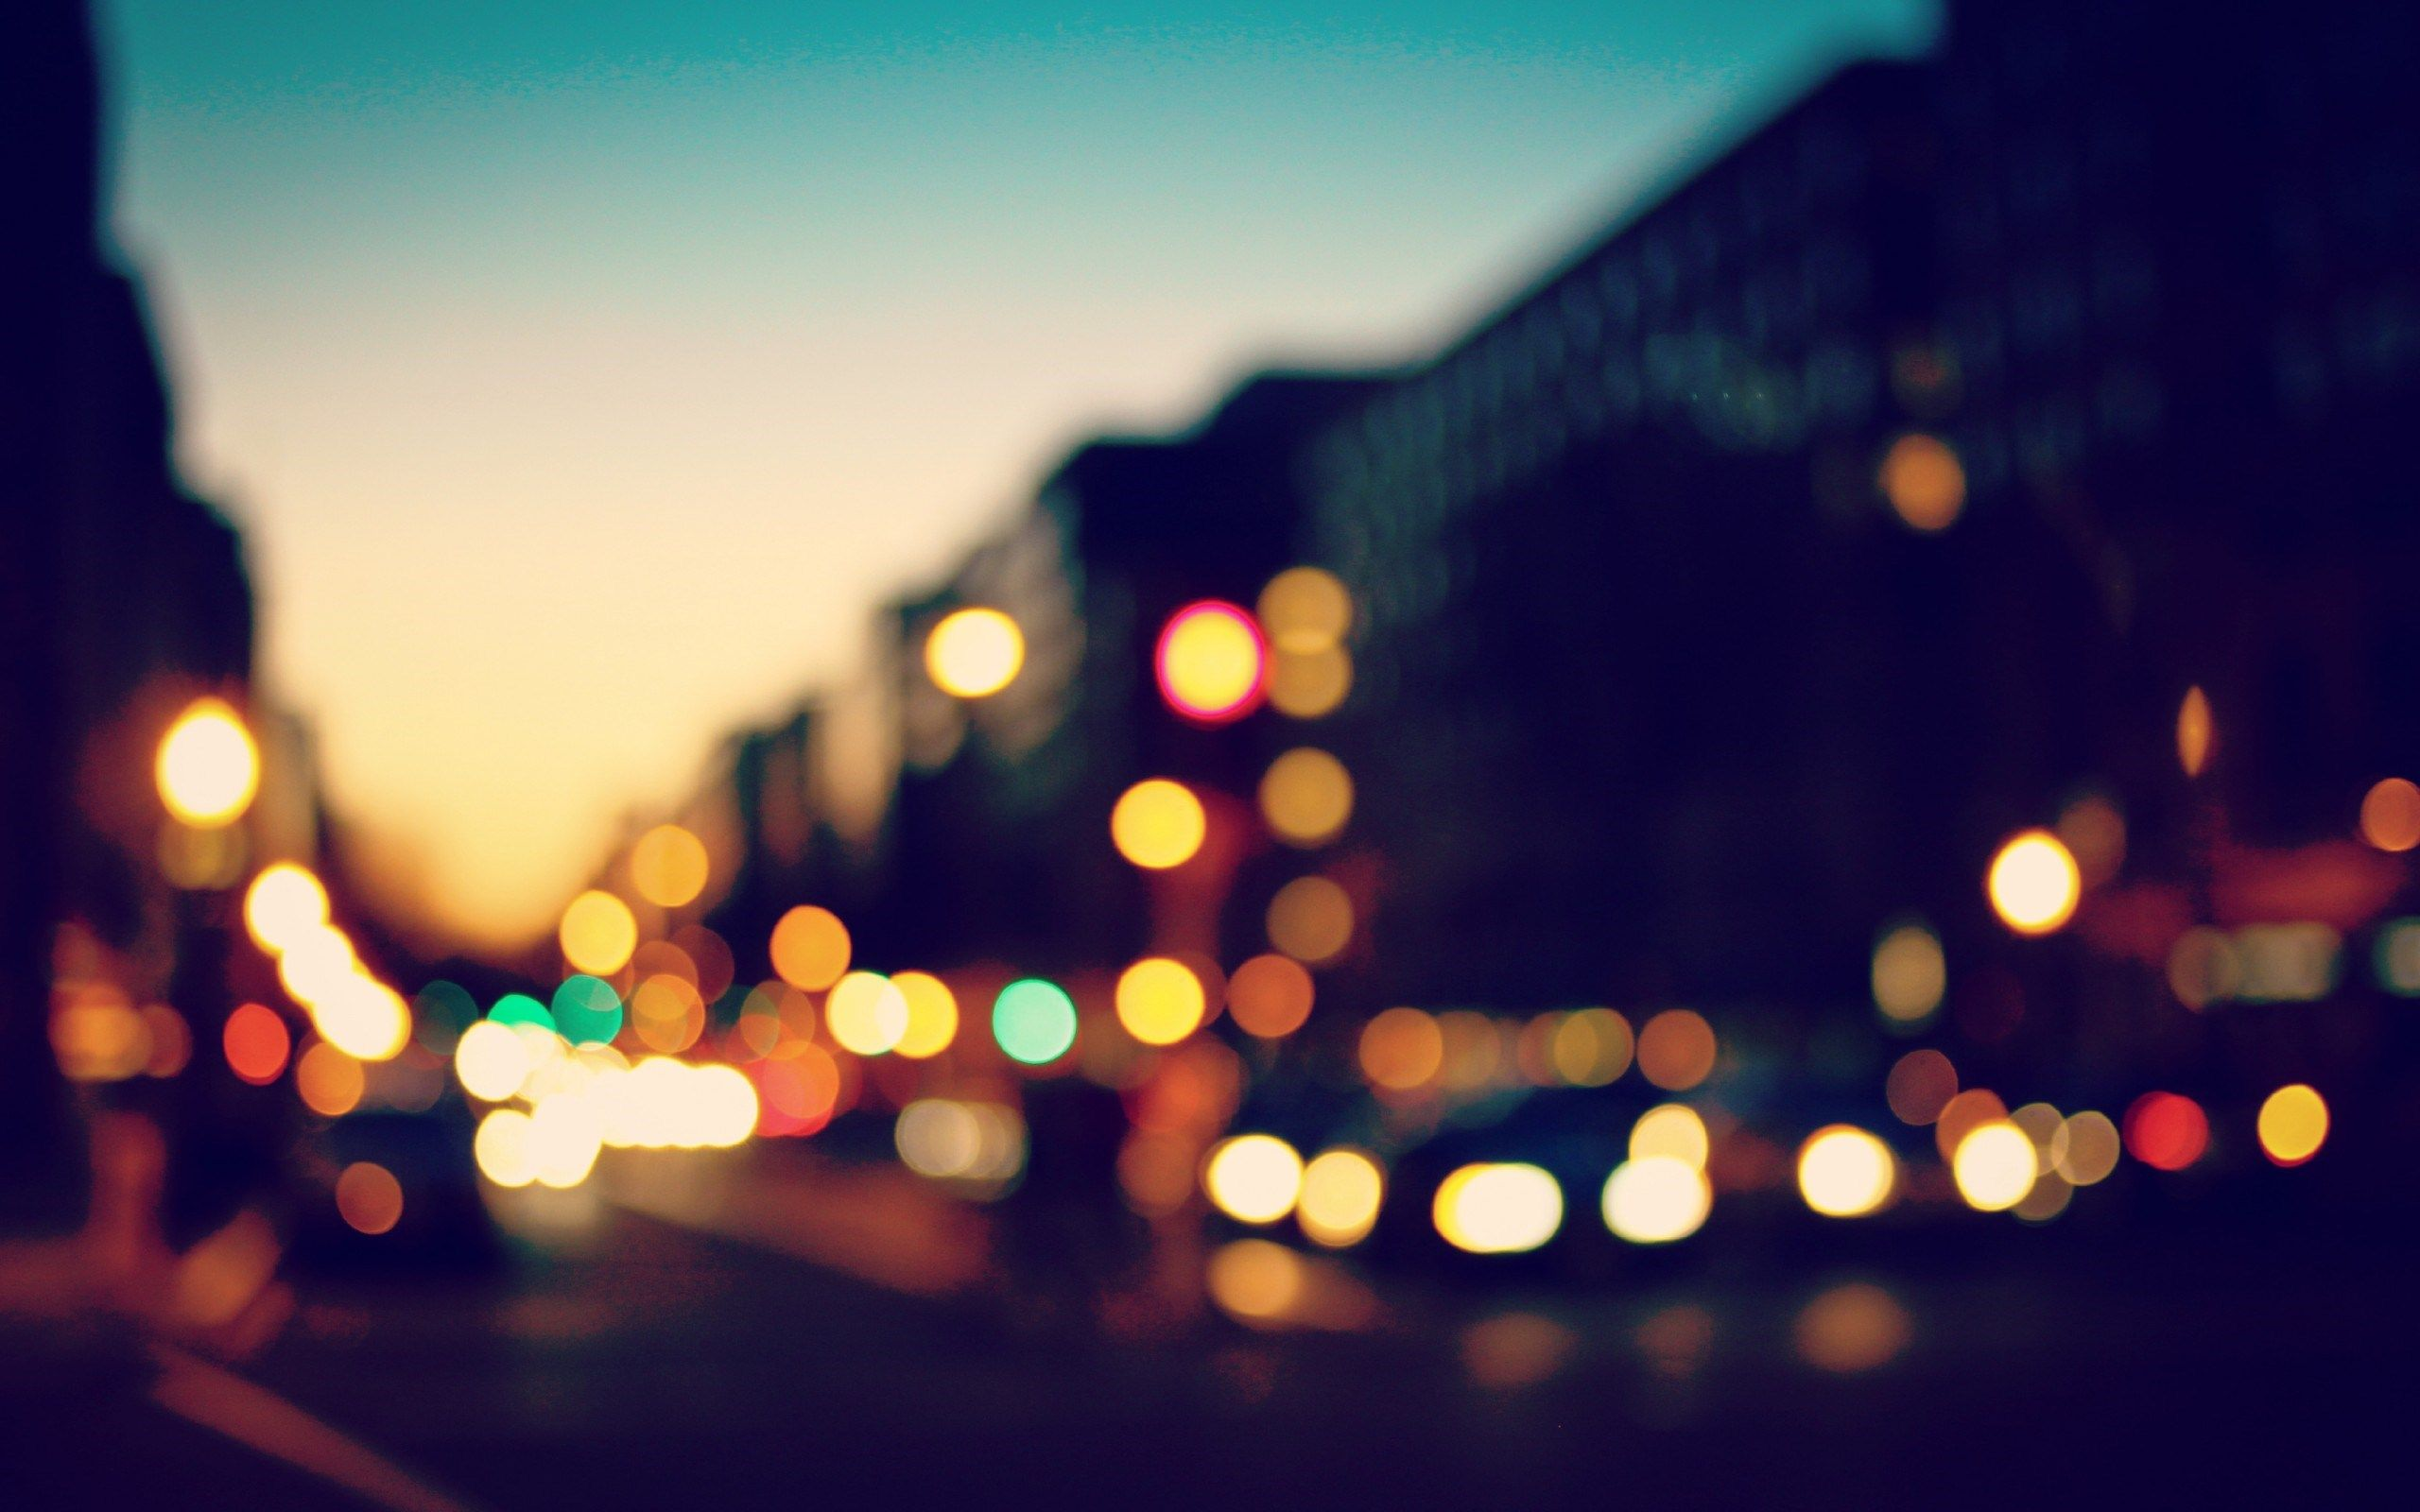 5 Steps To Create Content For The Buyer S Journey City Lights Wallpaper Bokeh Photography Sunset City